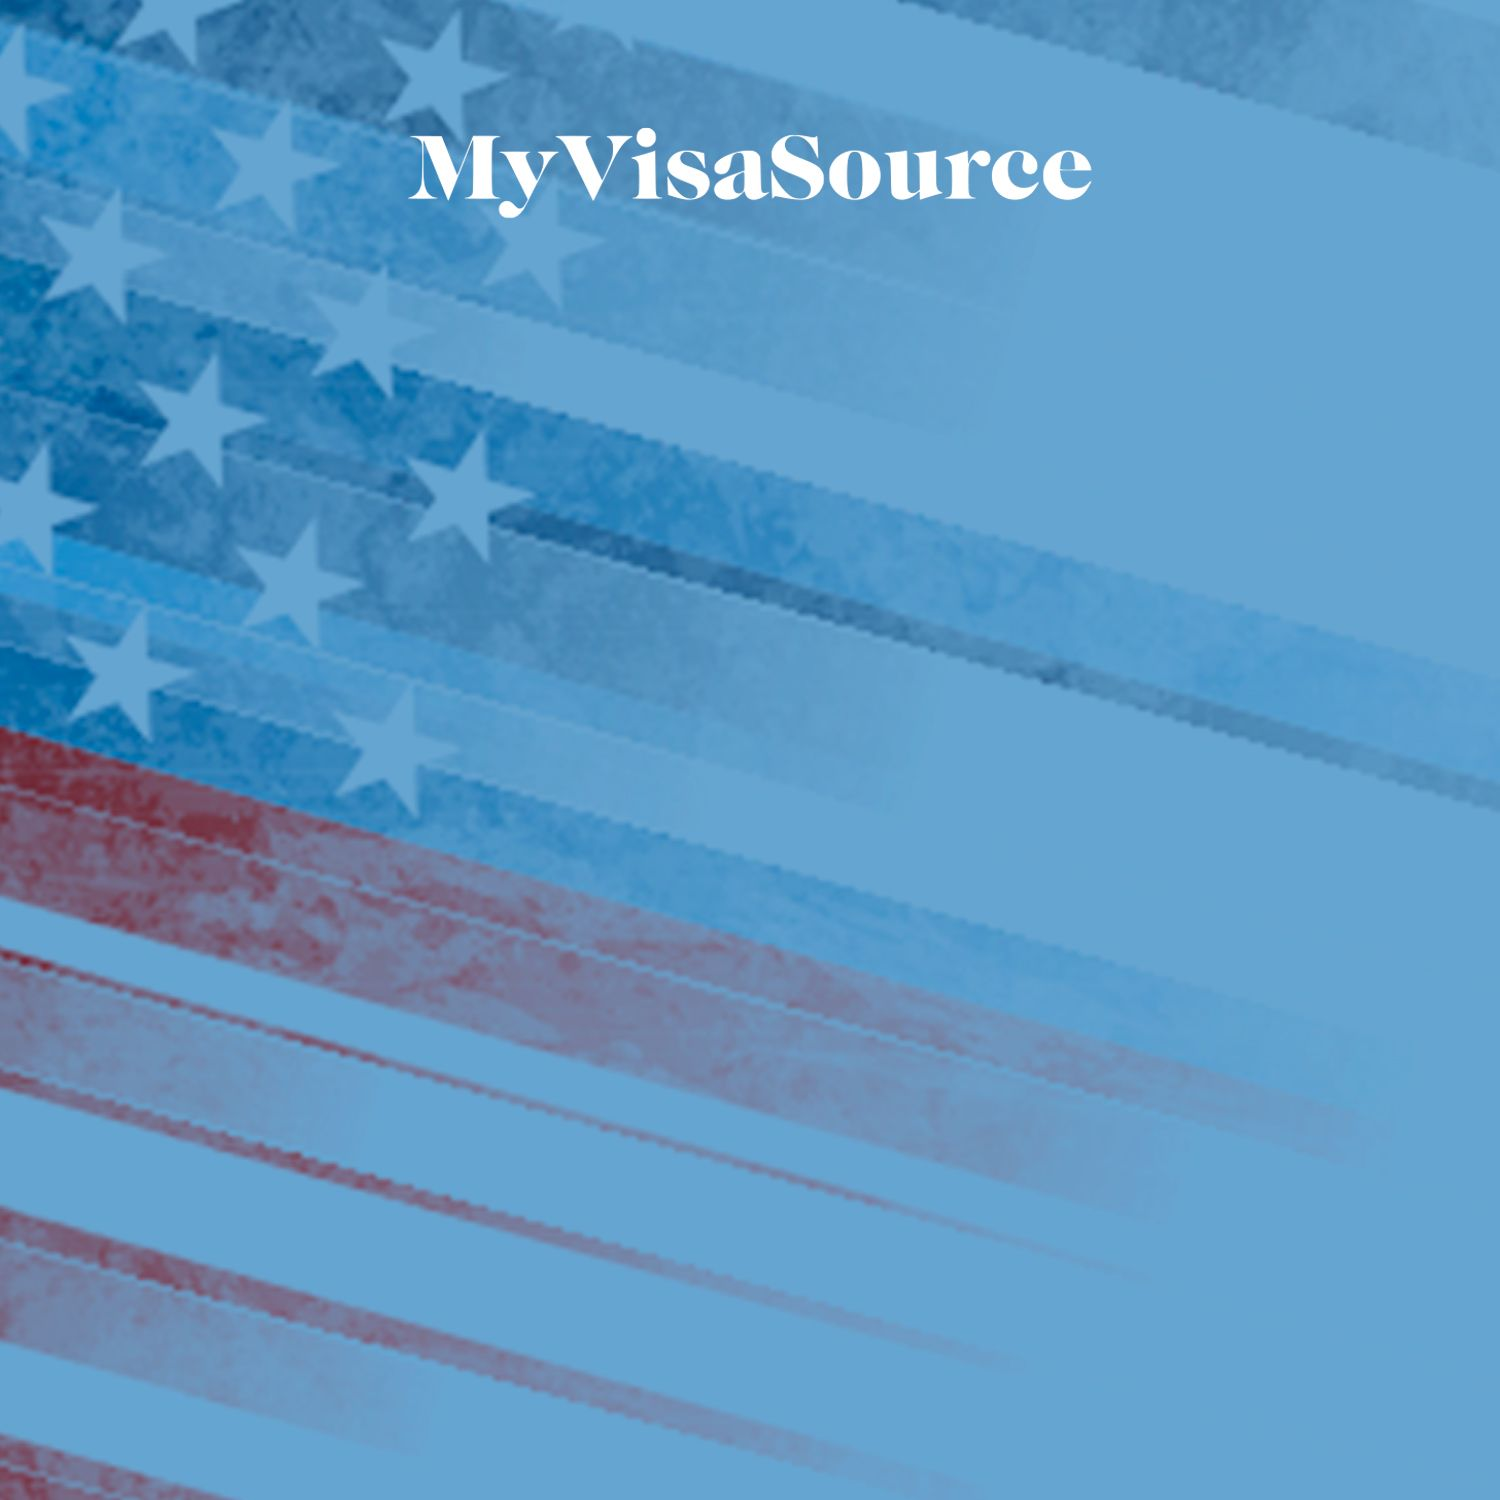 faded effect on an american flag my visa source